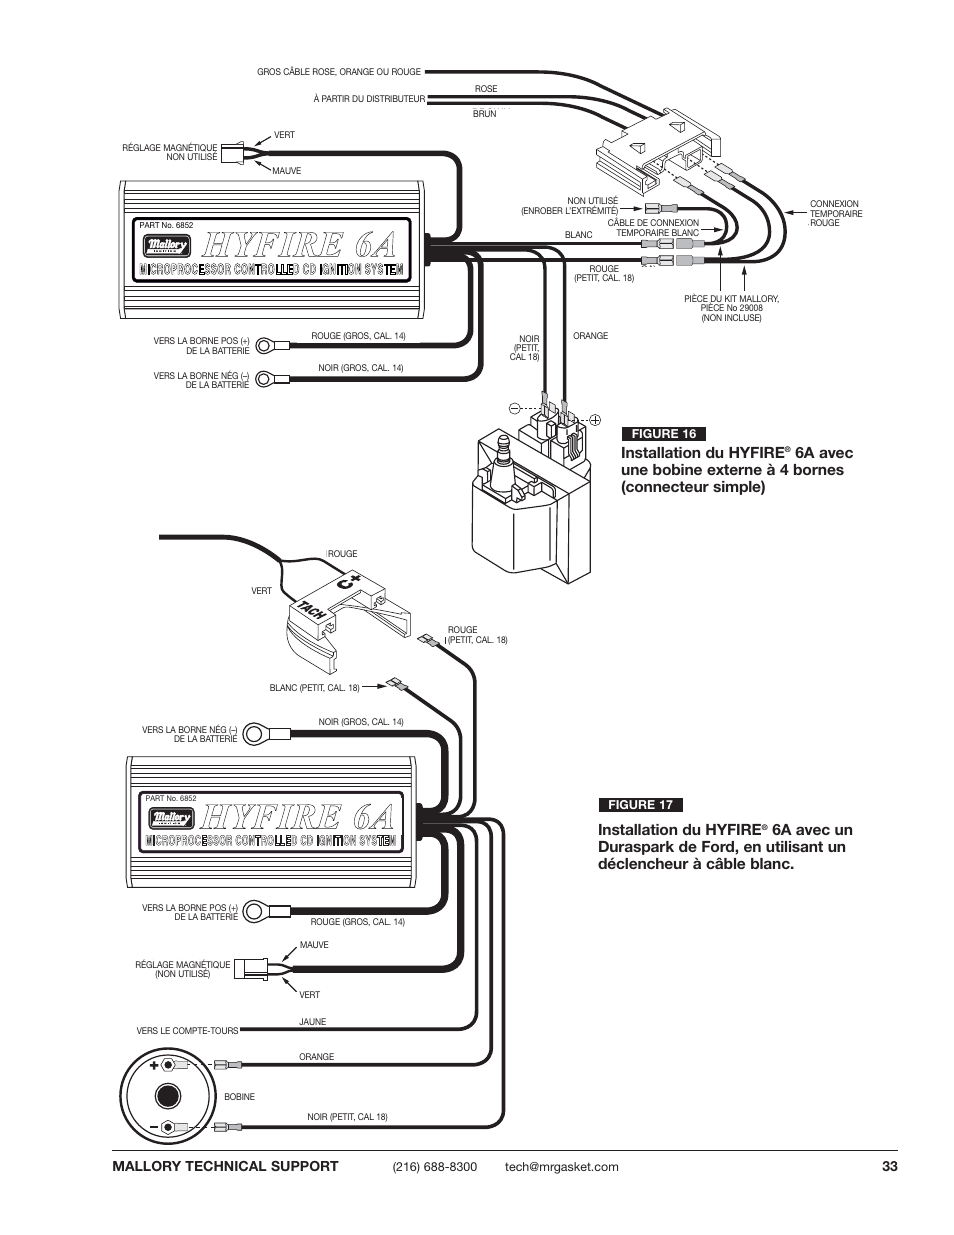 Mallory 685 Wiring Diagram - Wiring Diagram DataSource on msd 6al diagram, electronic ignition diagram, fairbanks morse magneto diagram, mallory high fire wiring-diagram, mallory carburetor diagram, basic car electrical system diagram, inboard outboard motor diagram, atwood rv water heater diagram, mallory dist wiring-diagram, omc ignition switch diagram,